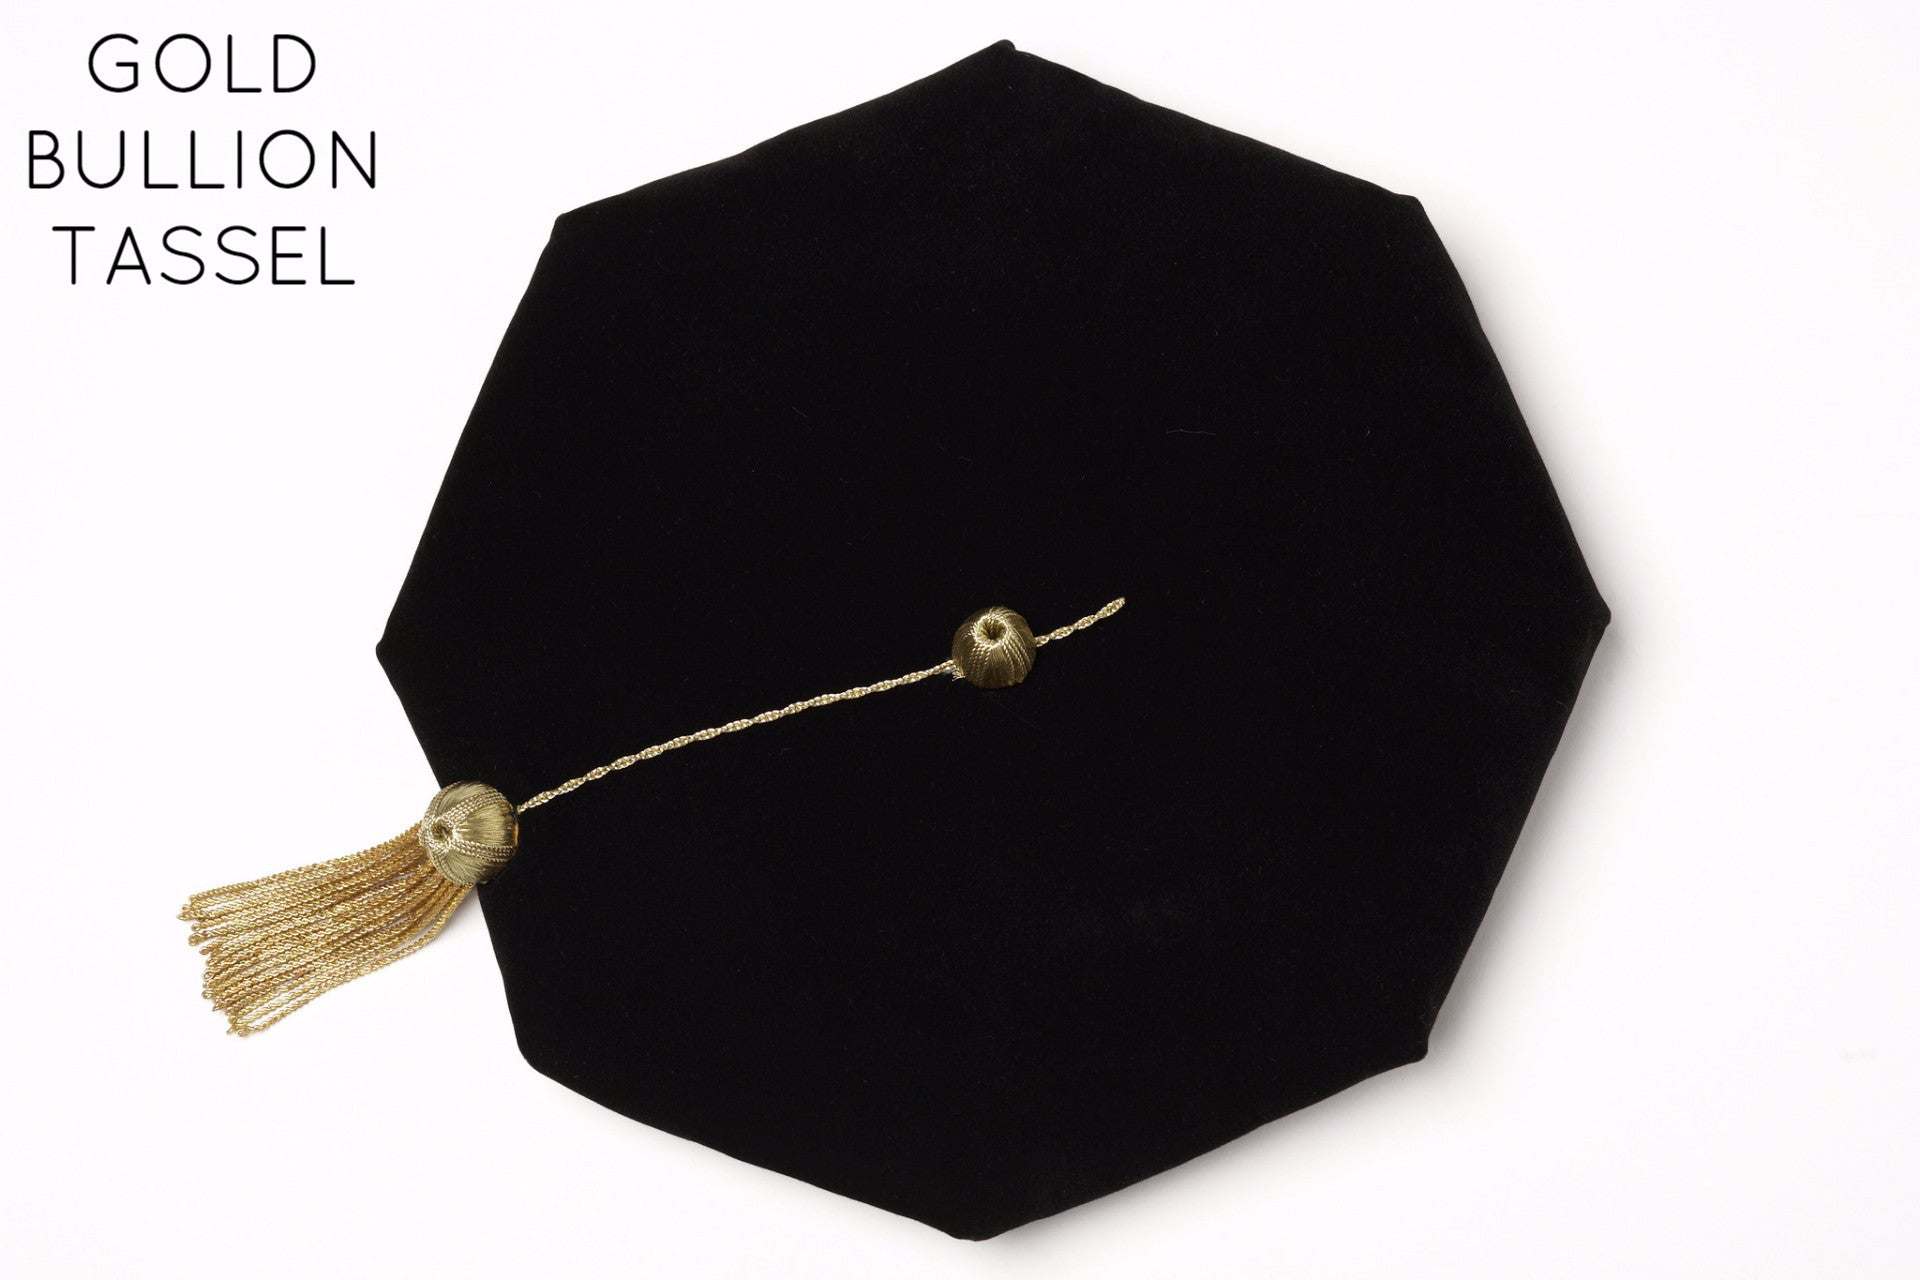 Yale University 8-Sided Doctoral Tam (Cap) with Gold Tassel